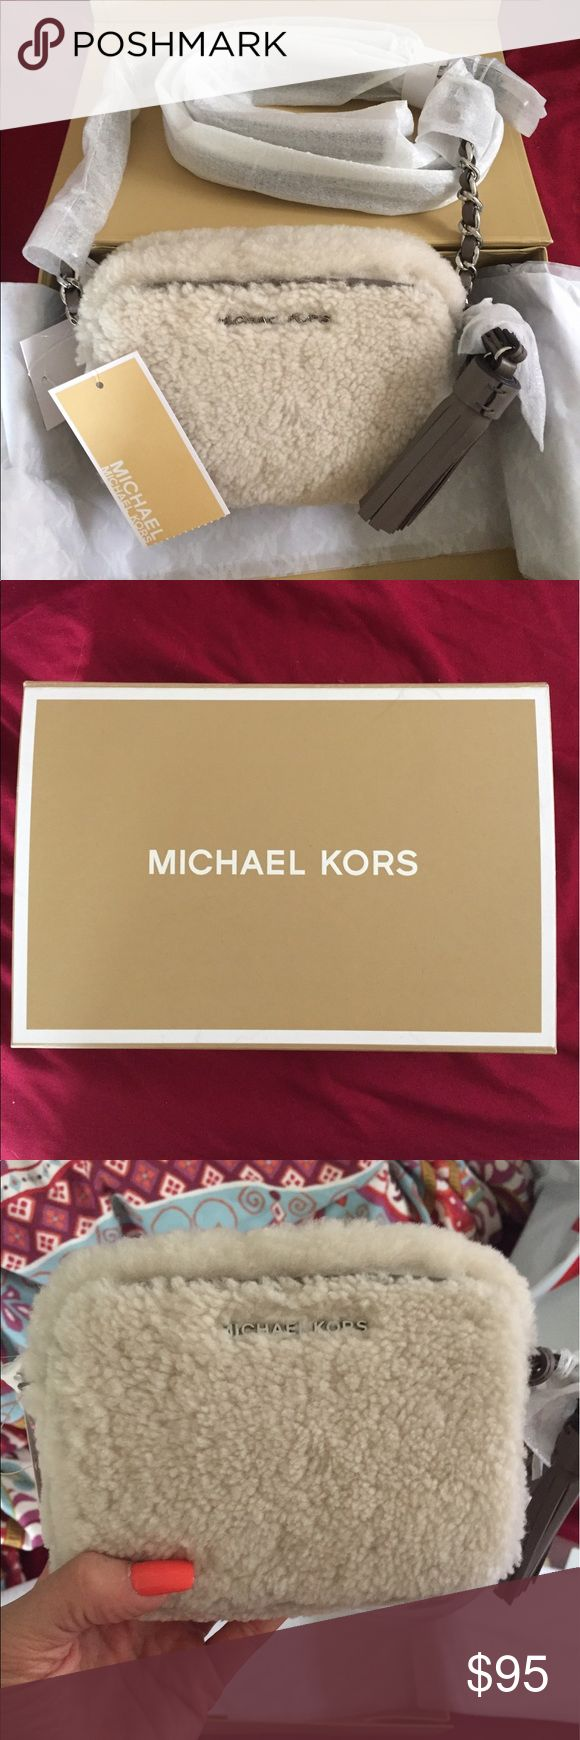 Michael Kors Jet Set Travel Shearling Crossbody Brand new Michael Kors crossbody bag. Still in box with tags and all packaging attached! Retails for $148! MICHAEL Michael Kors Bags Crossbody Bags